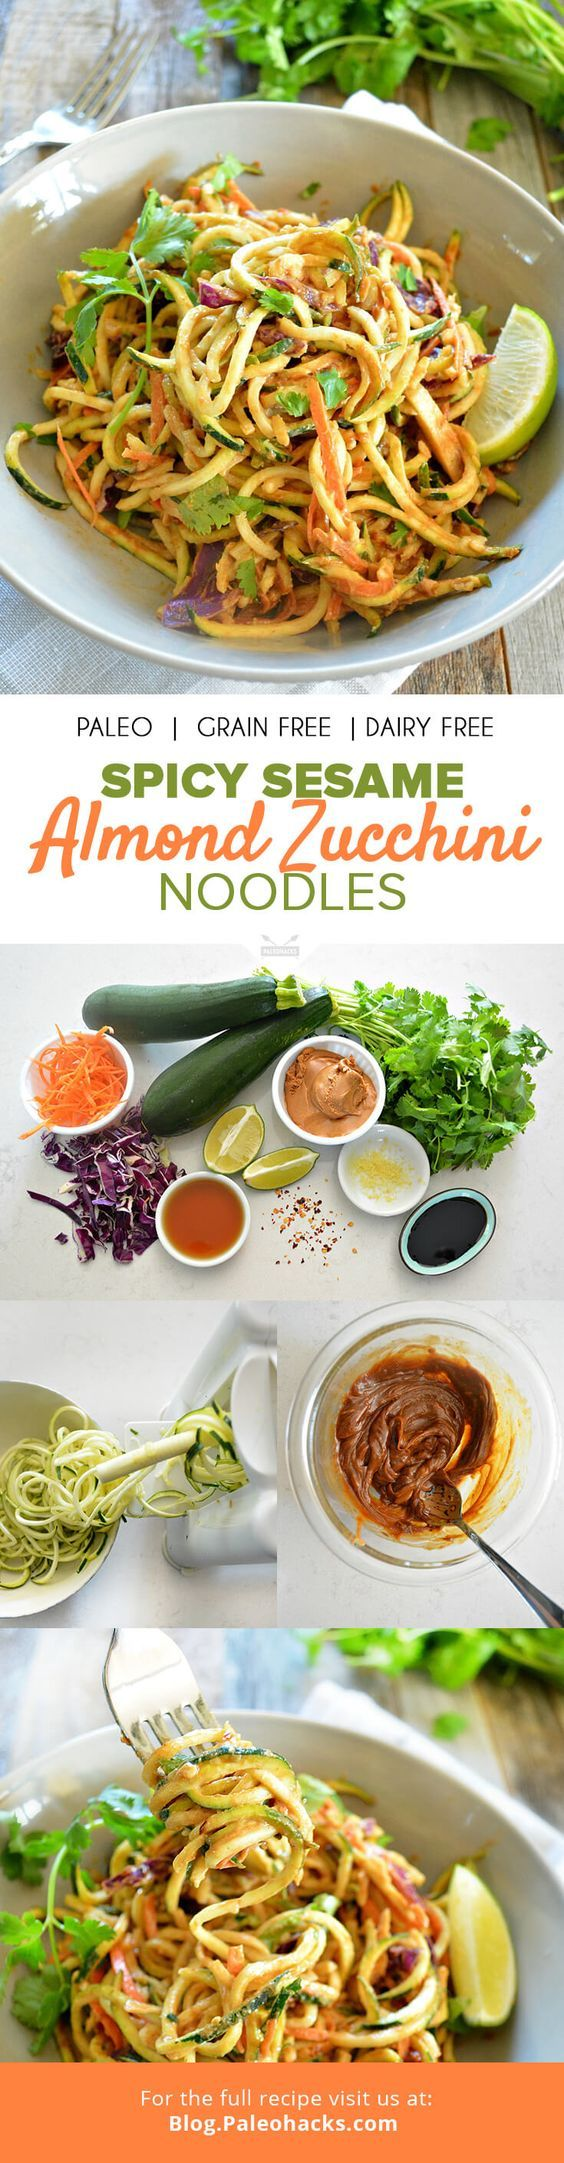 On a warm day, few dishes satisfy like a chilled, nutty noodle salad. These almond zucchini noodles are smothered in a creamy sesame sauce for the perfect Paleo takeout replacement. For the full recipe visit us here: http://paleo.co/sesamealmondzoodles